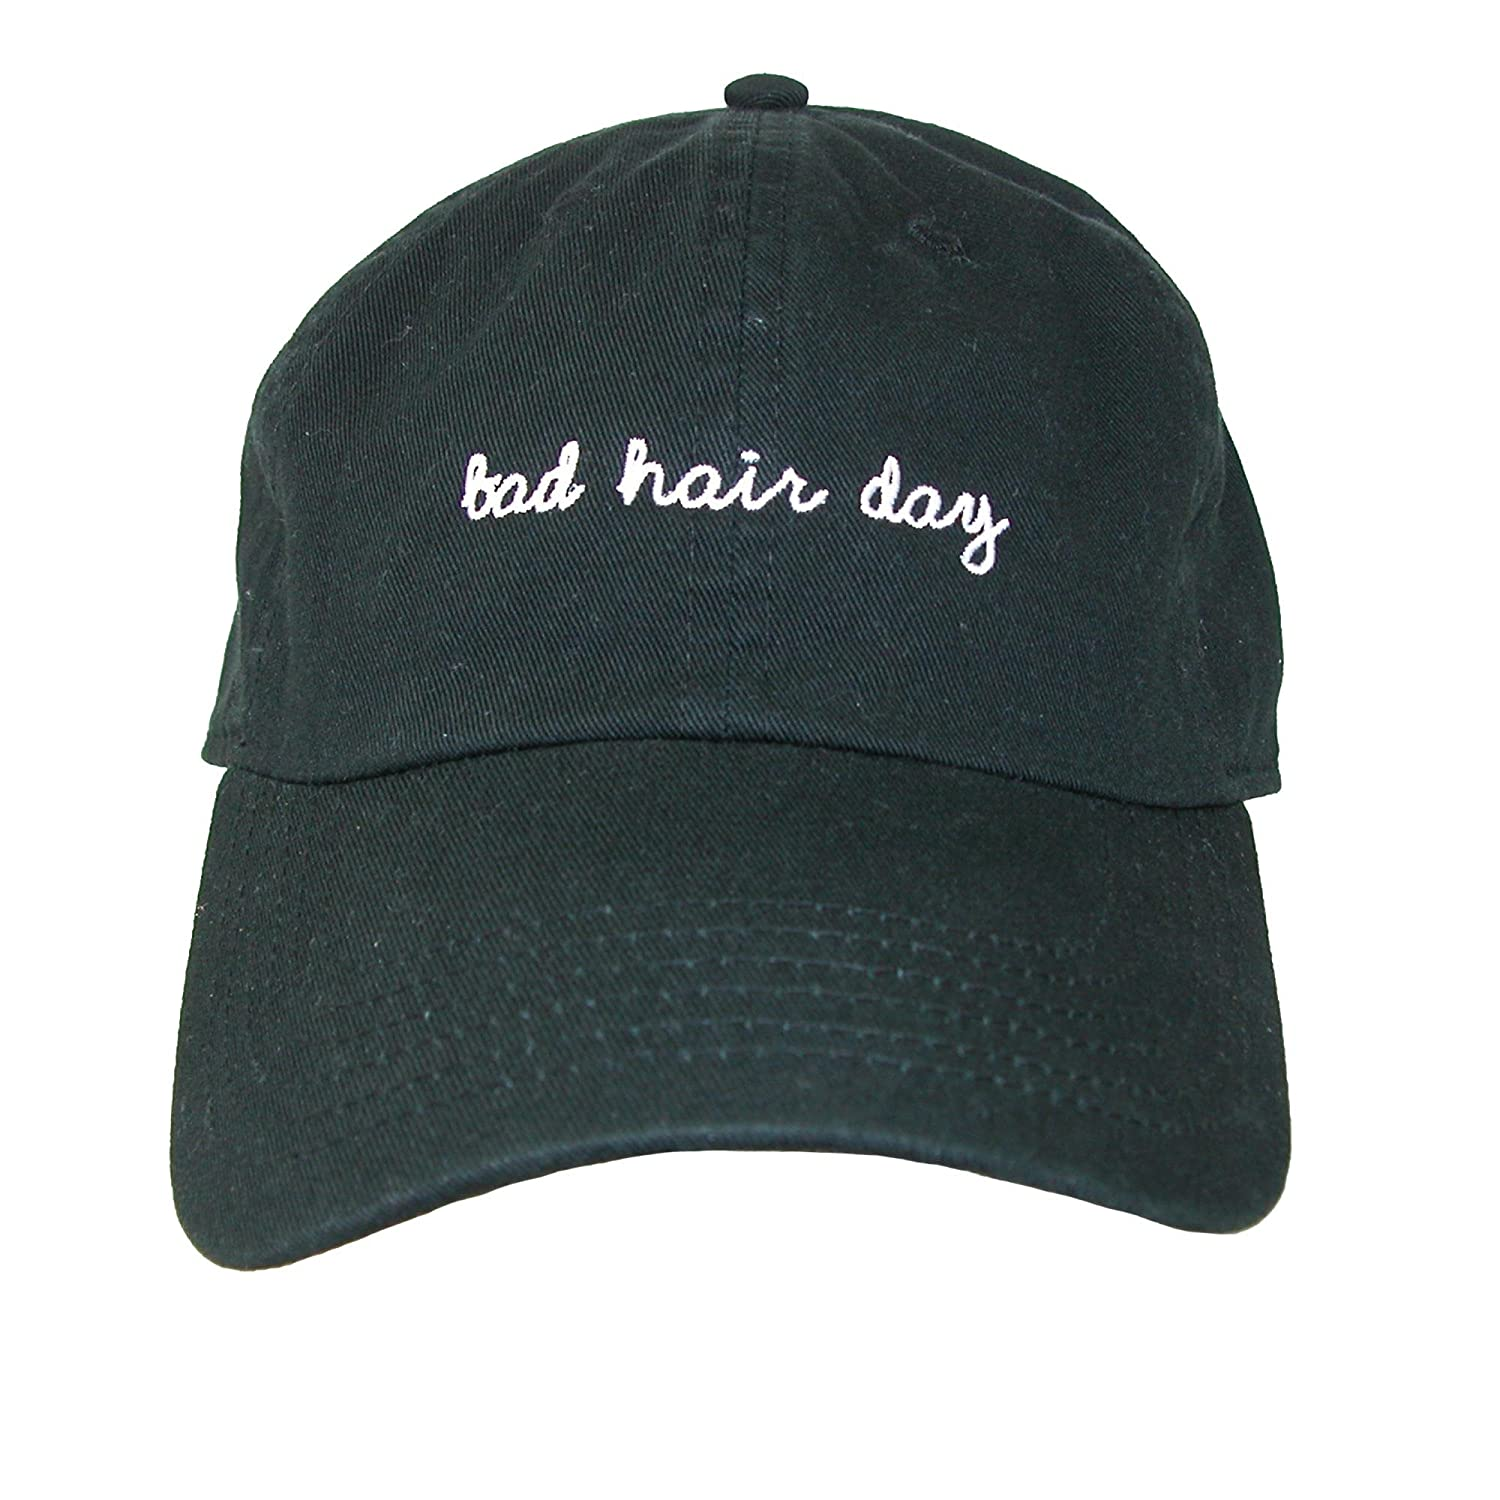 dba53d0cb56ce6 David & Young Bad Hair Day Embroidered Cotton Baseball Cap, Black at Amazon  Women's Clothing store: